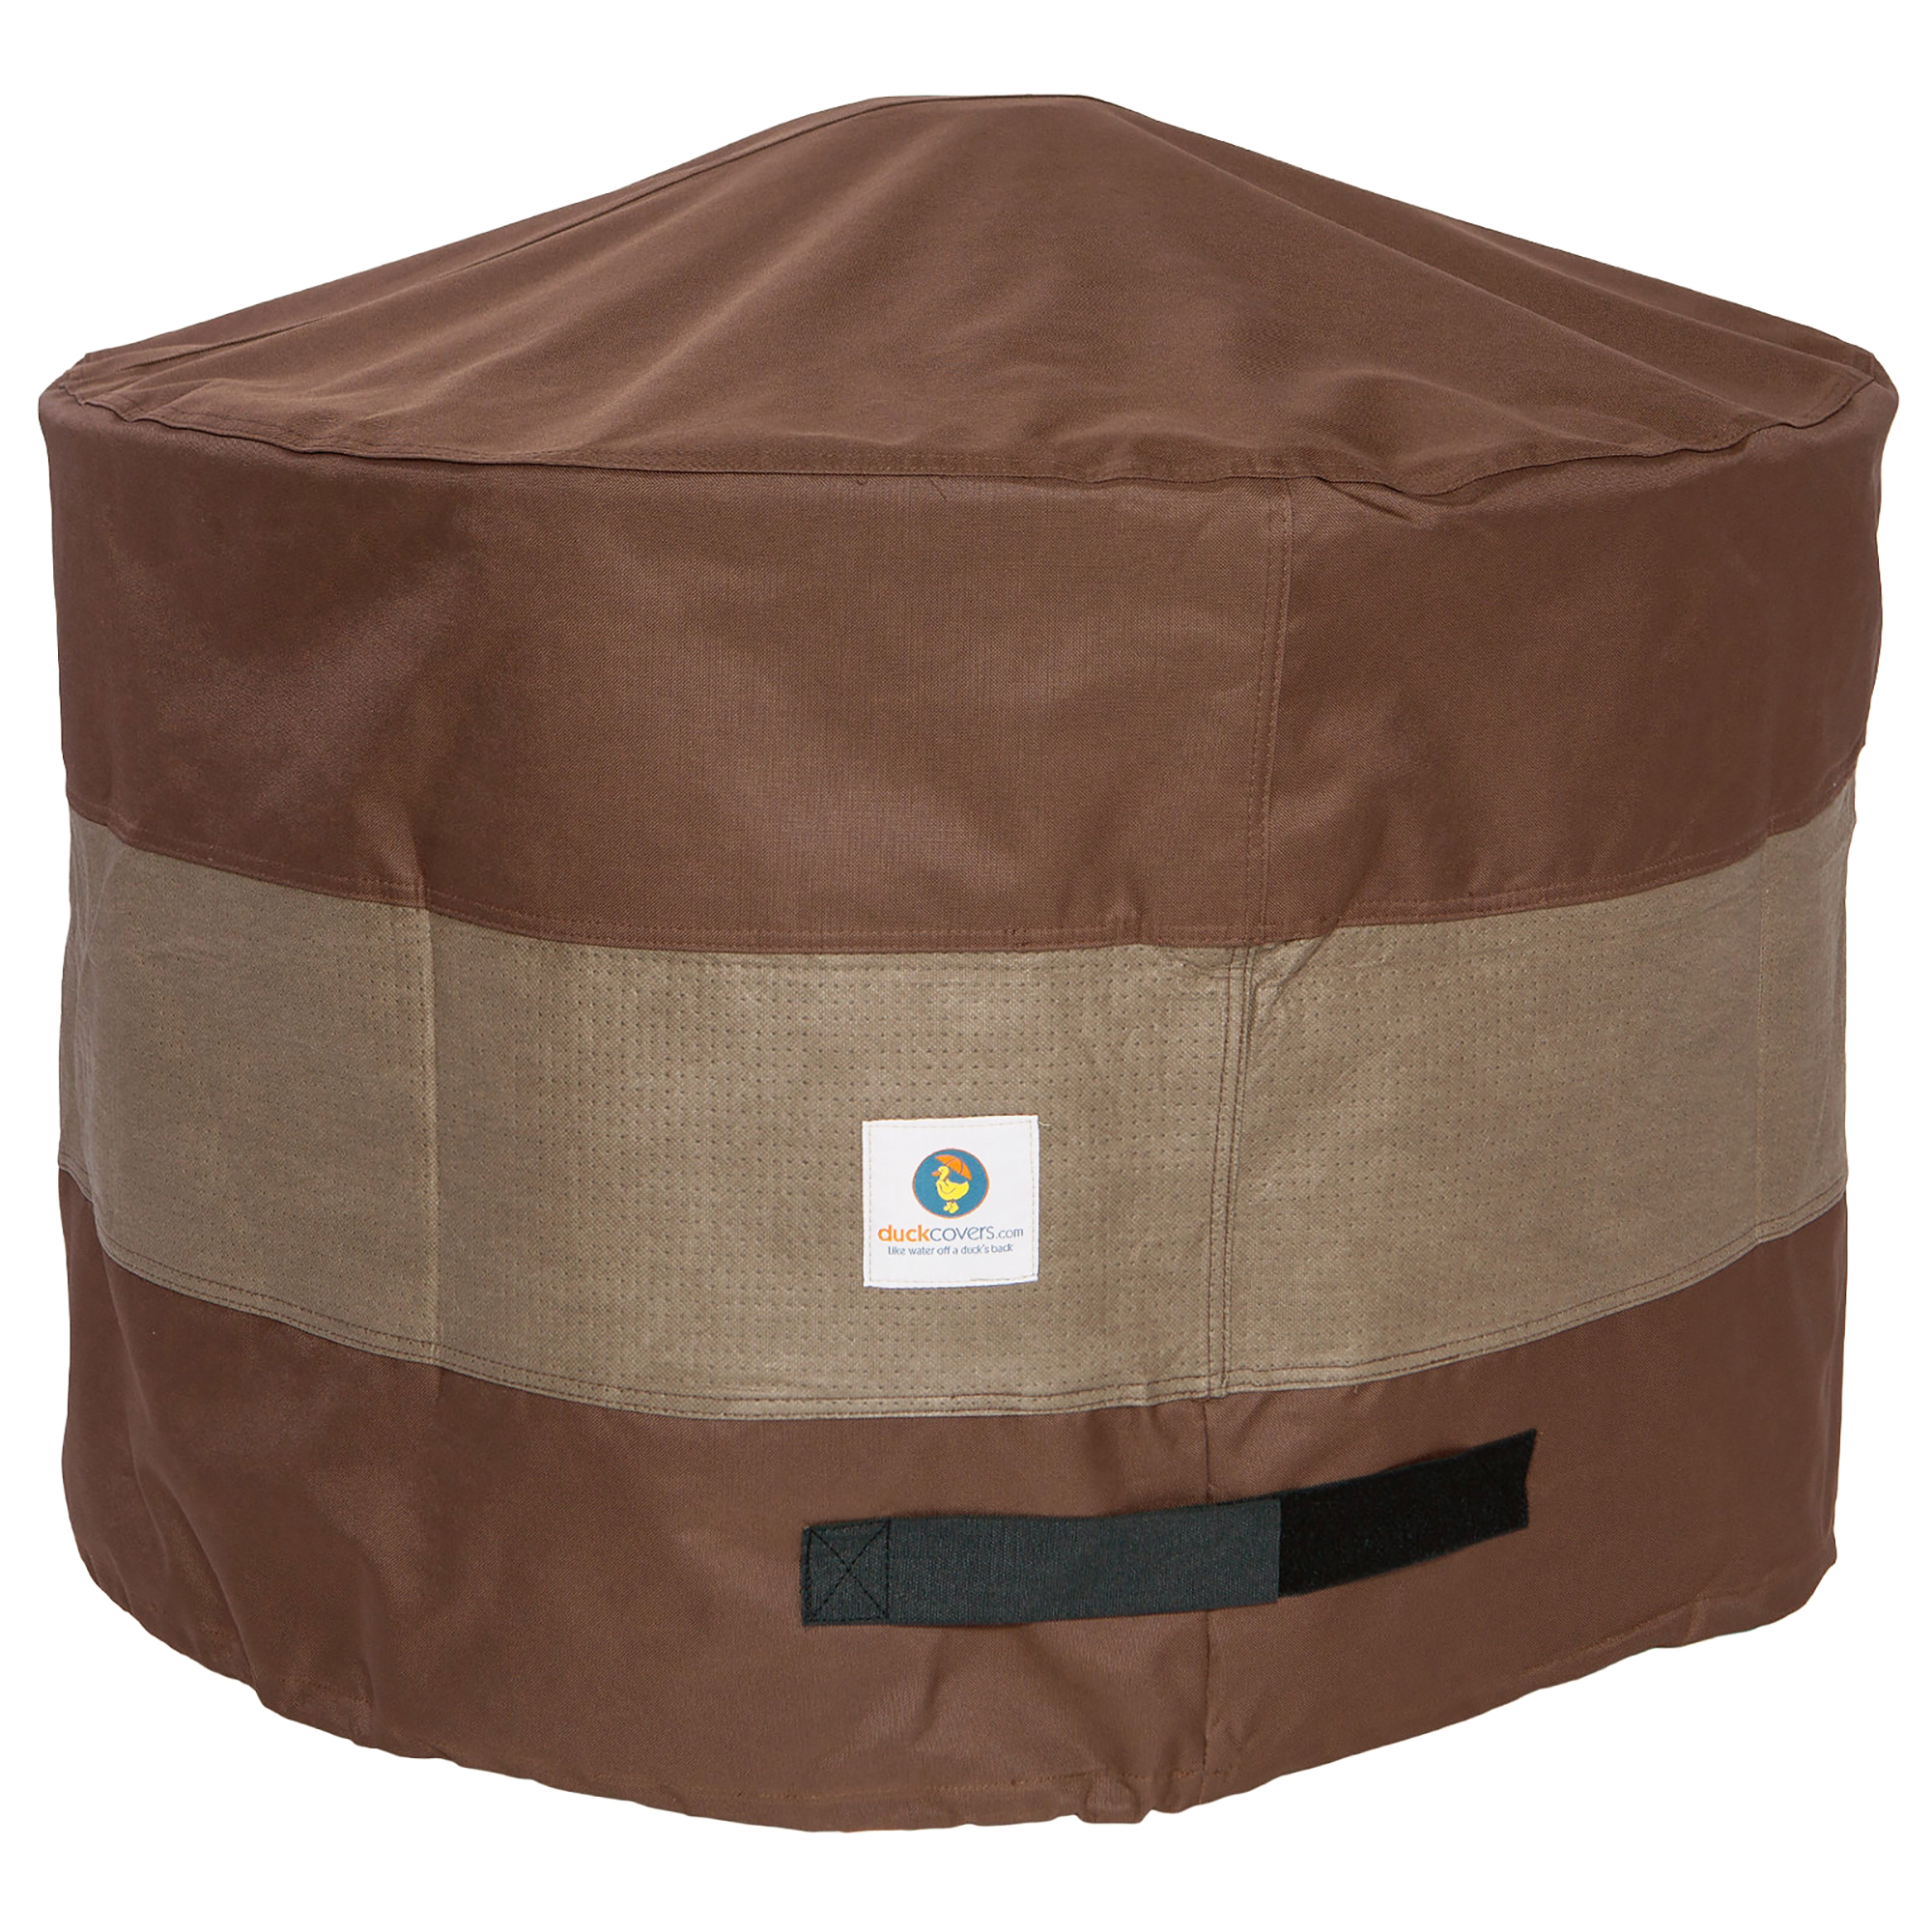 Duck Covers Ultimate 36 in. Round Fire Pit Cover